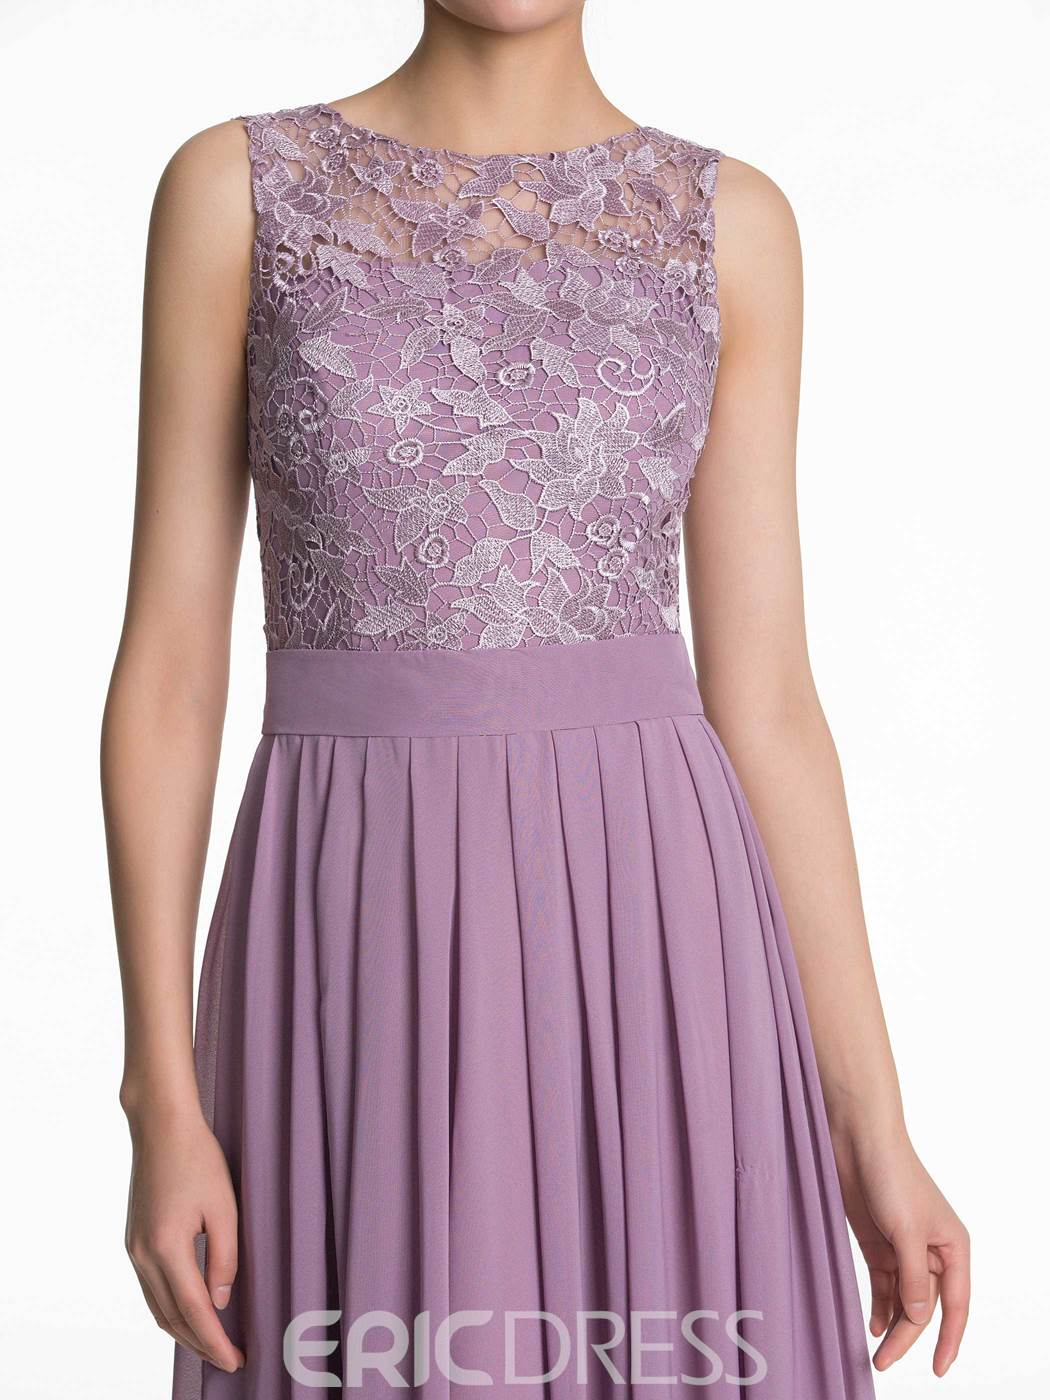 Ericdress High Quality Lace A Line Bridesmaid Dress